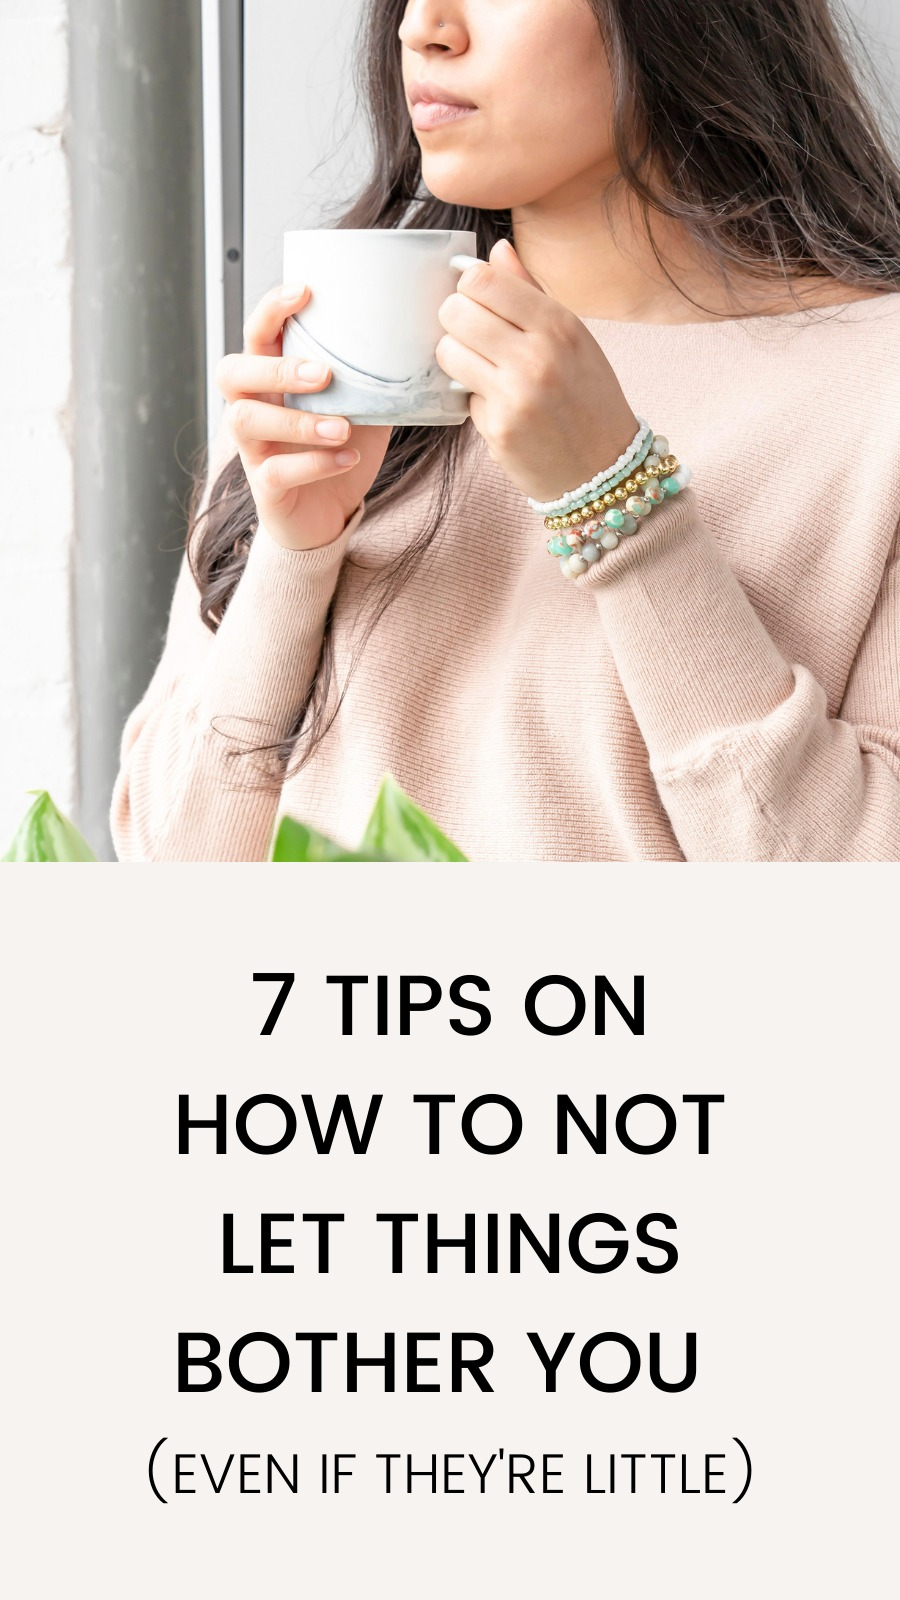 7 Tips on How to Not Let Things Bother You